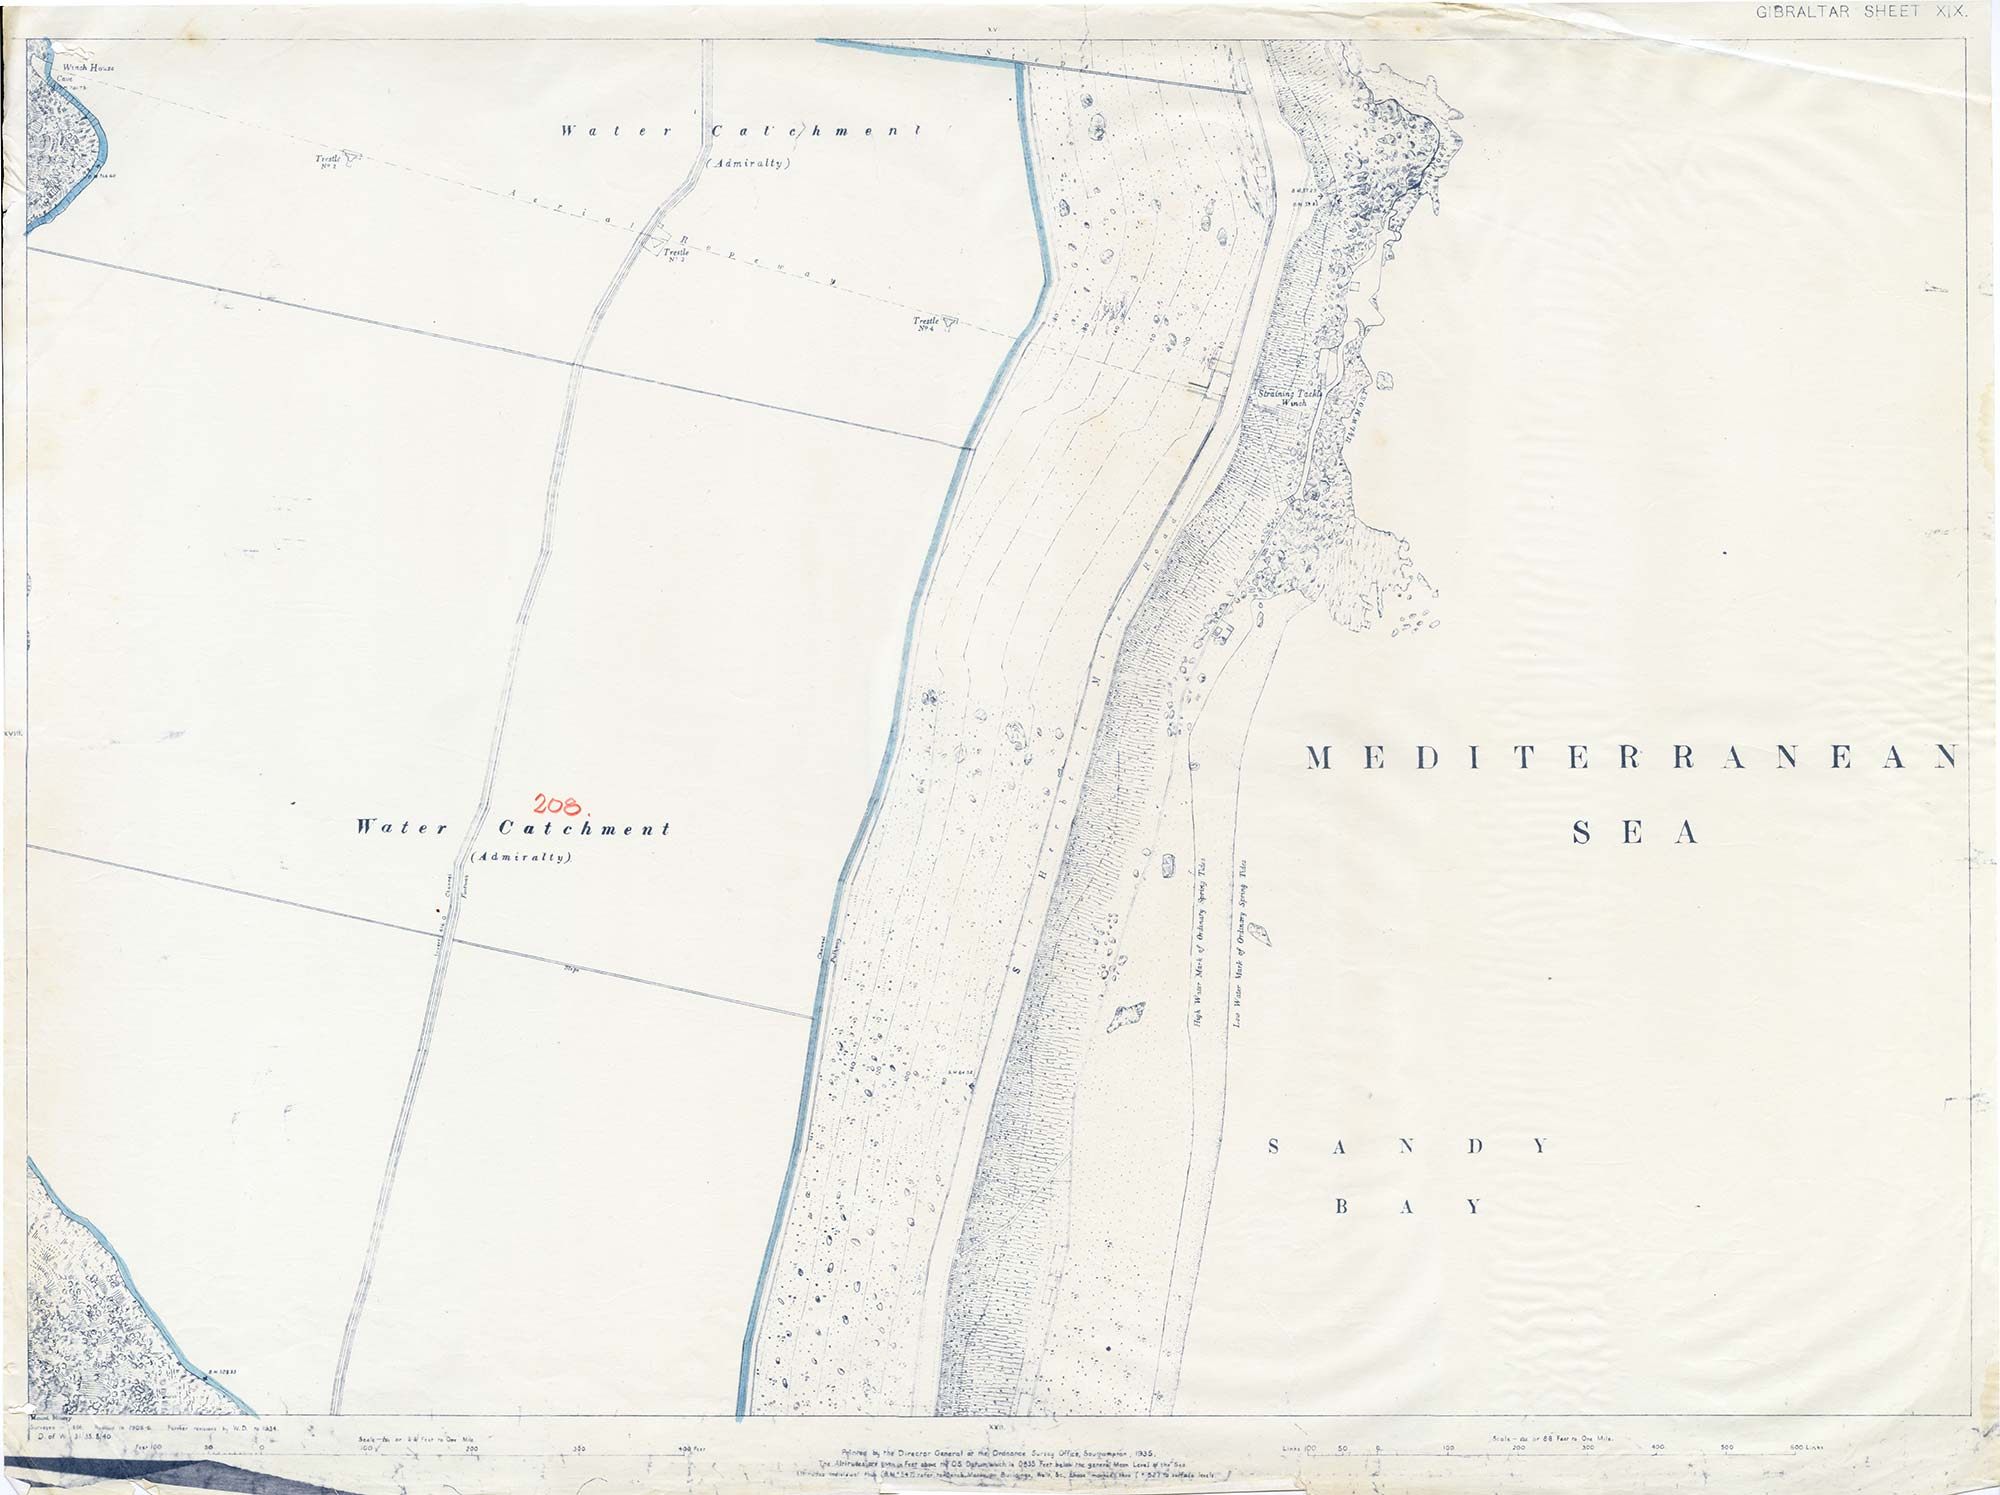 Map-19-OS-Sheet-19-Water-Catchment-Sandy-Bay-1934